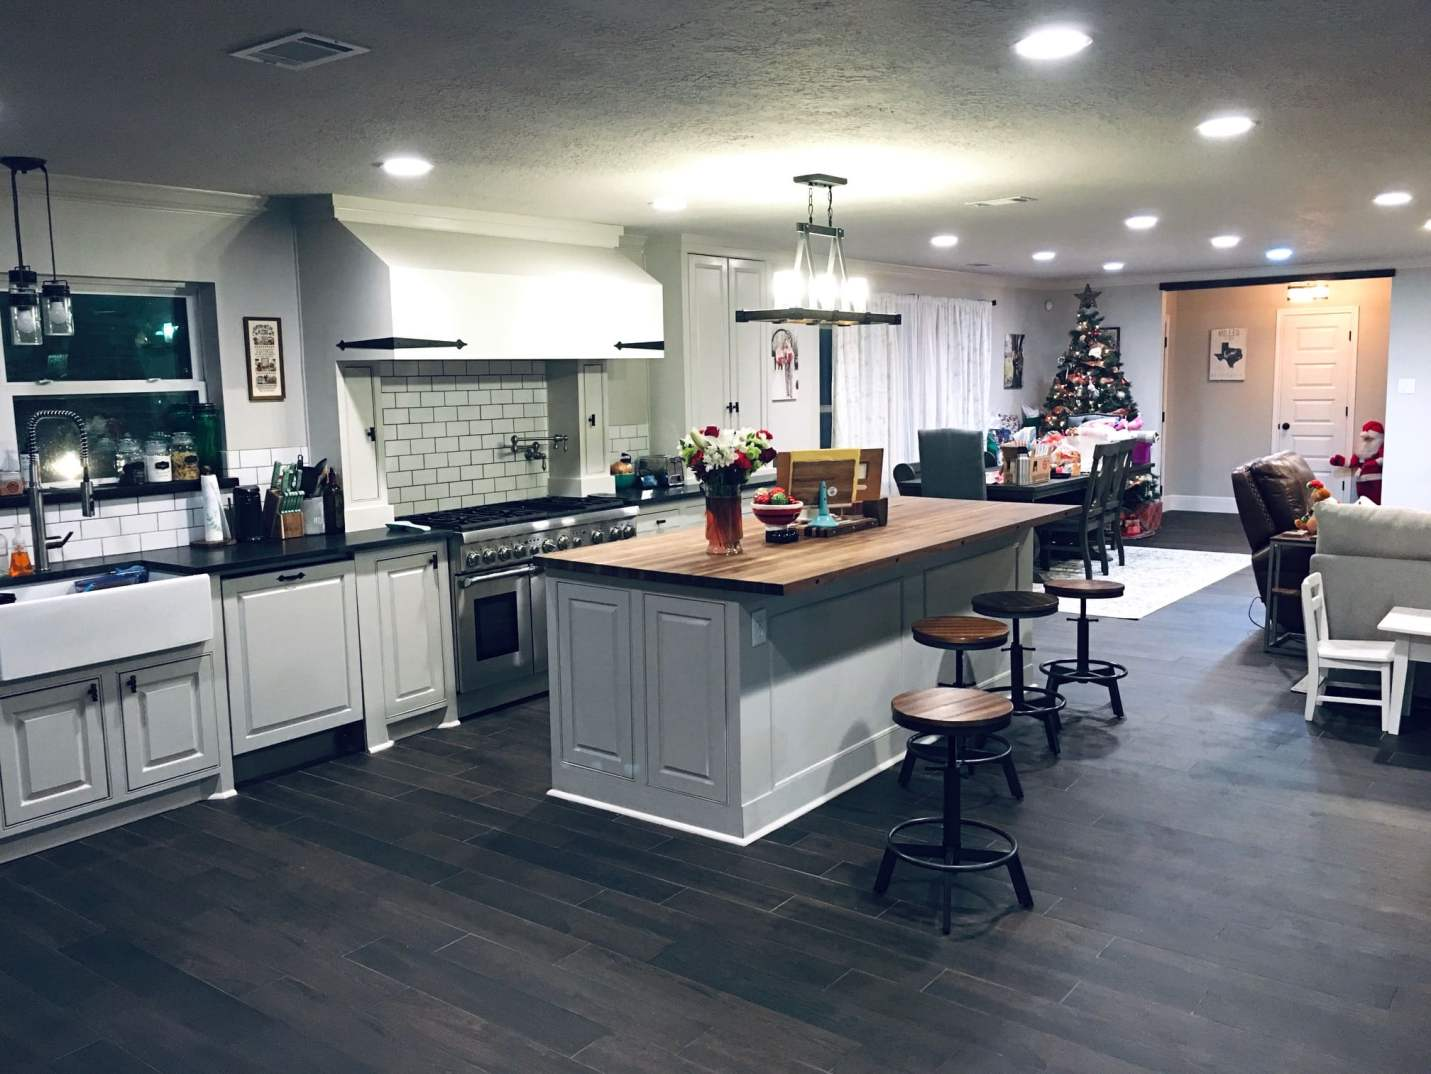 Kitchens Remodeling in The Woodlands & Conroe